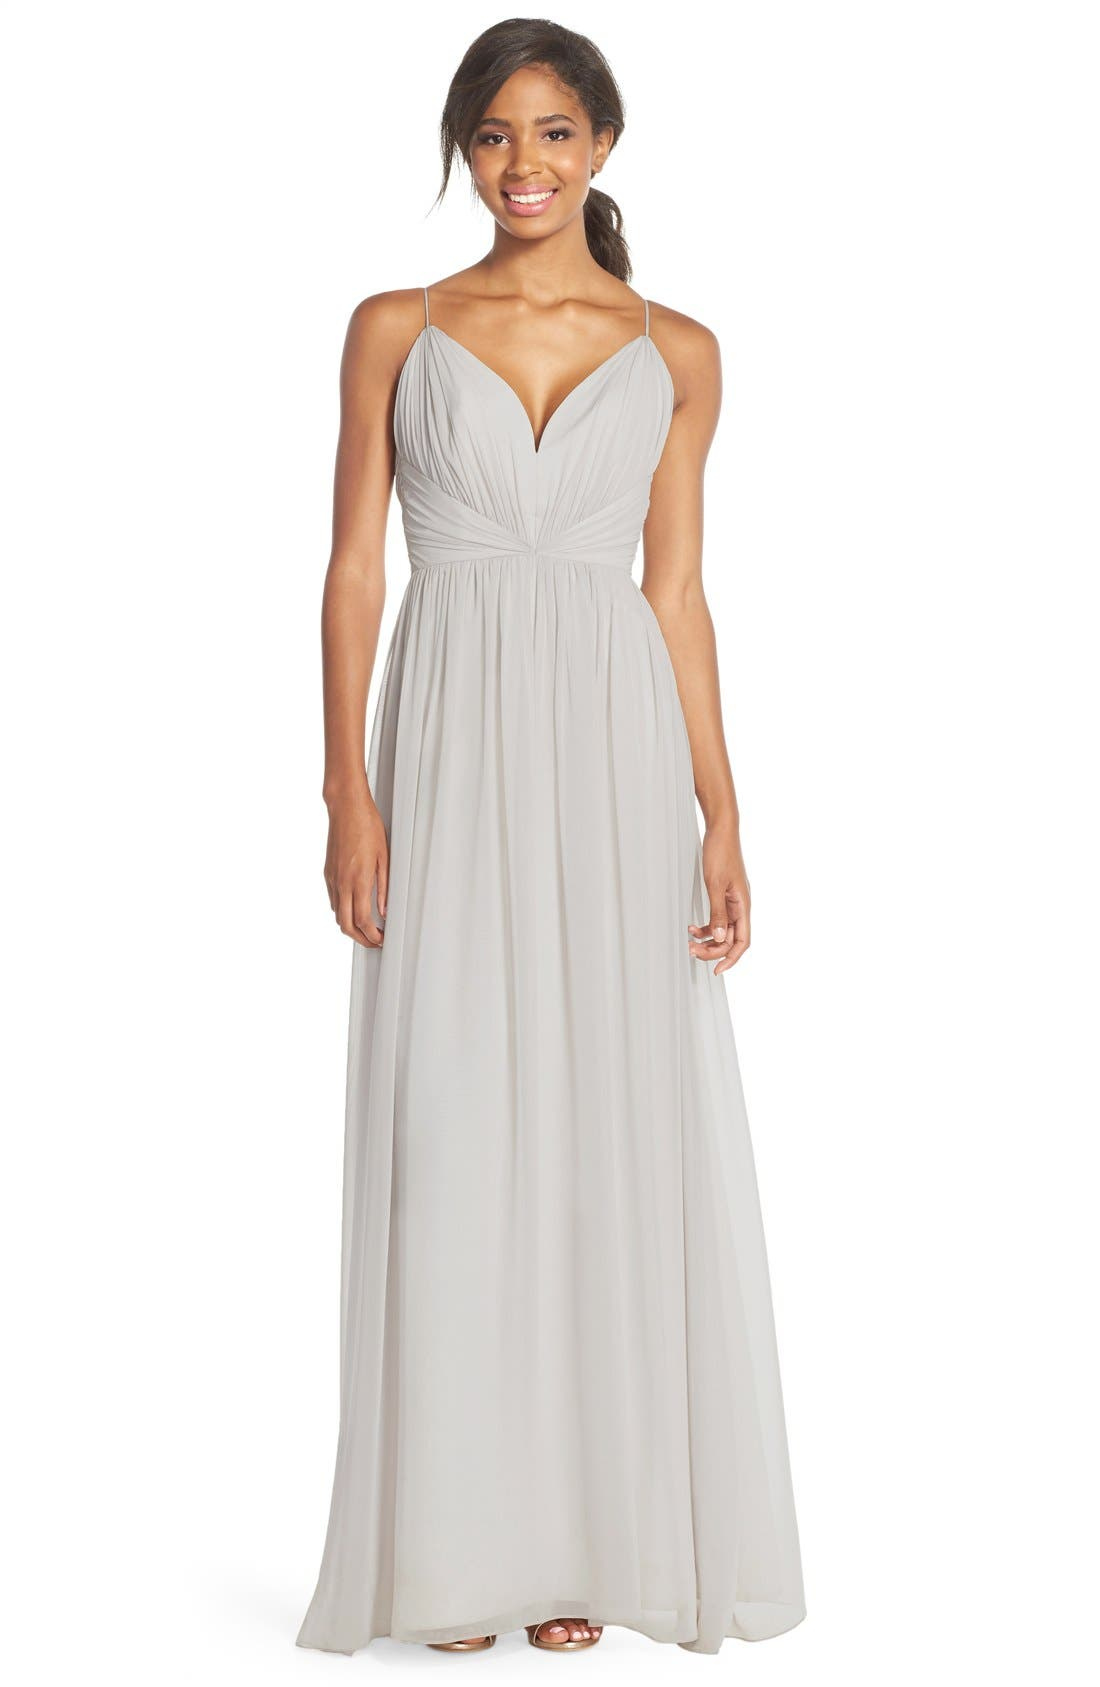 Jim hjelm occasions bridesmaid wedding party dresses nordstrom ombrellifo Images